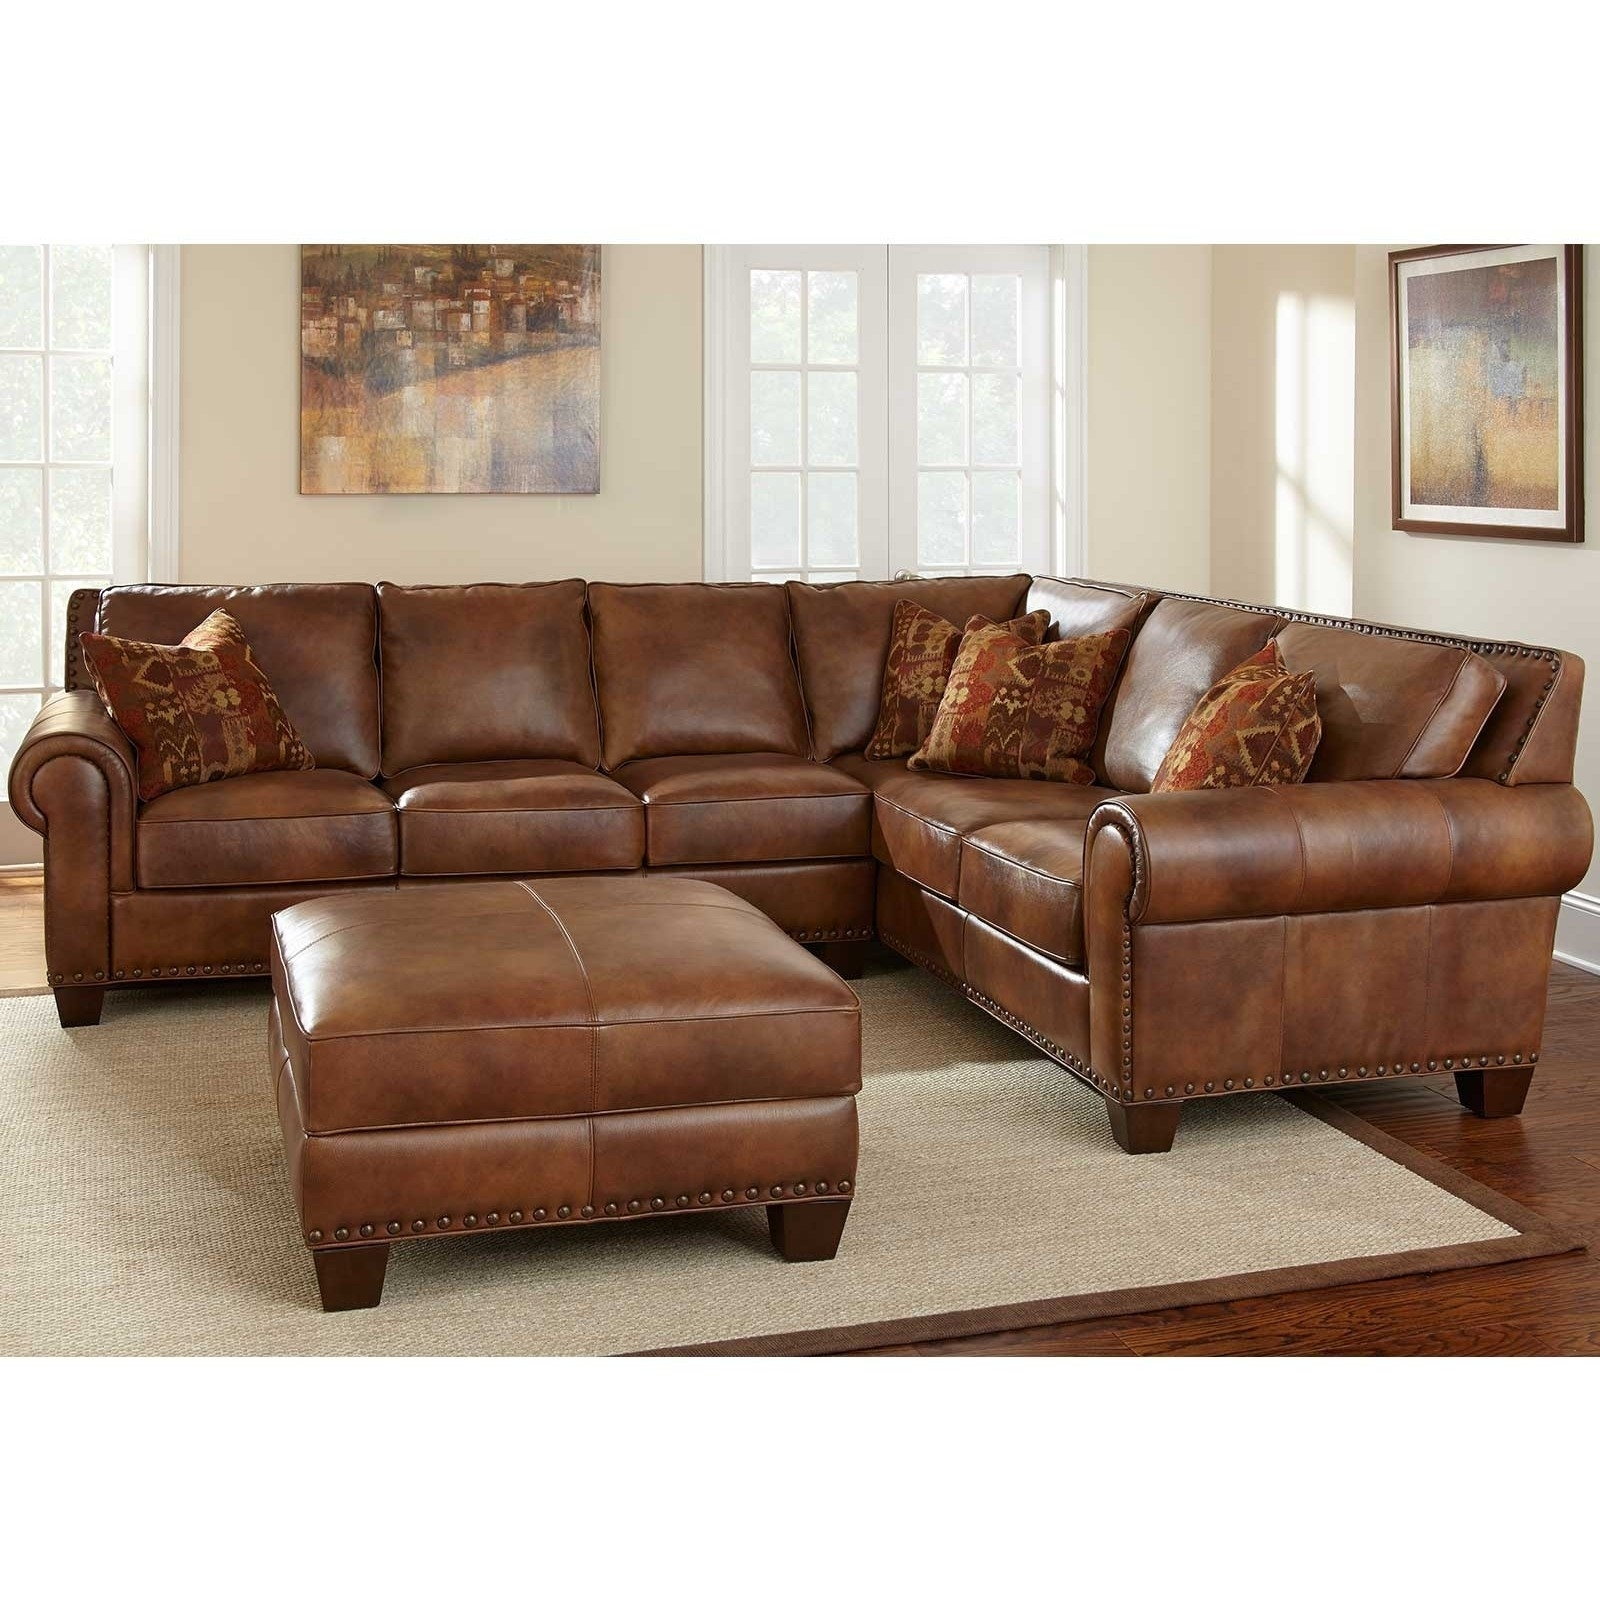 10 choices of high end leather sectional sofas sofa ideas for High end sofas for sale